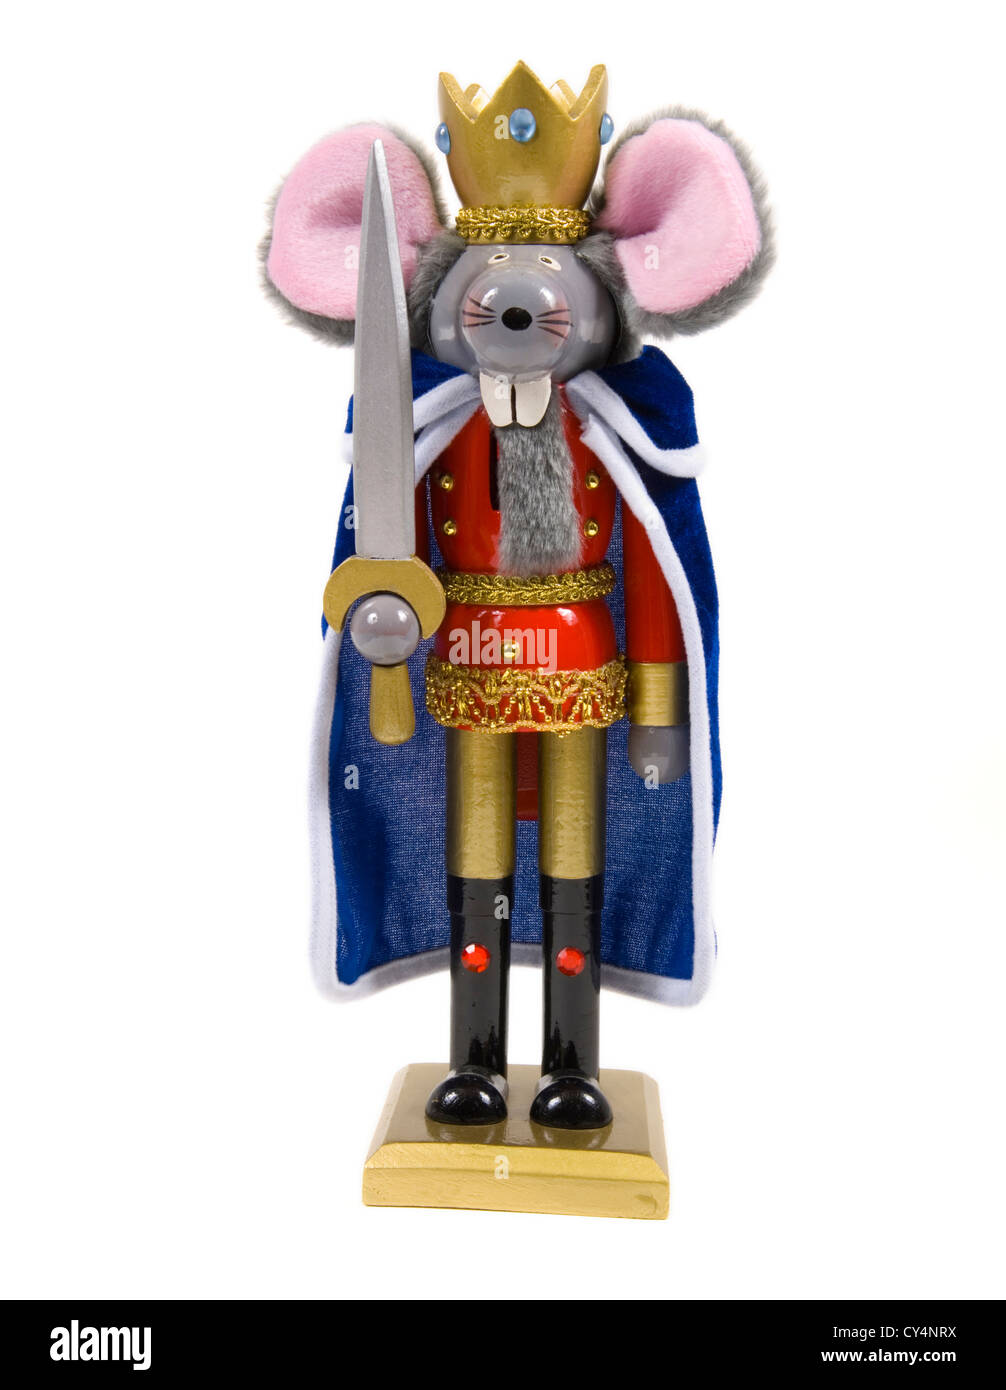 Christmas Nutcrackers ,mouse king from nutcracker story - Stock Image